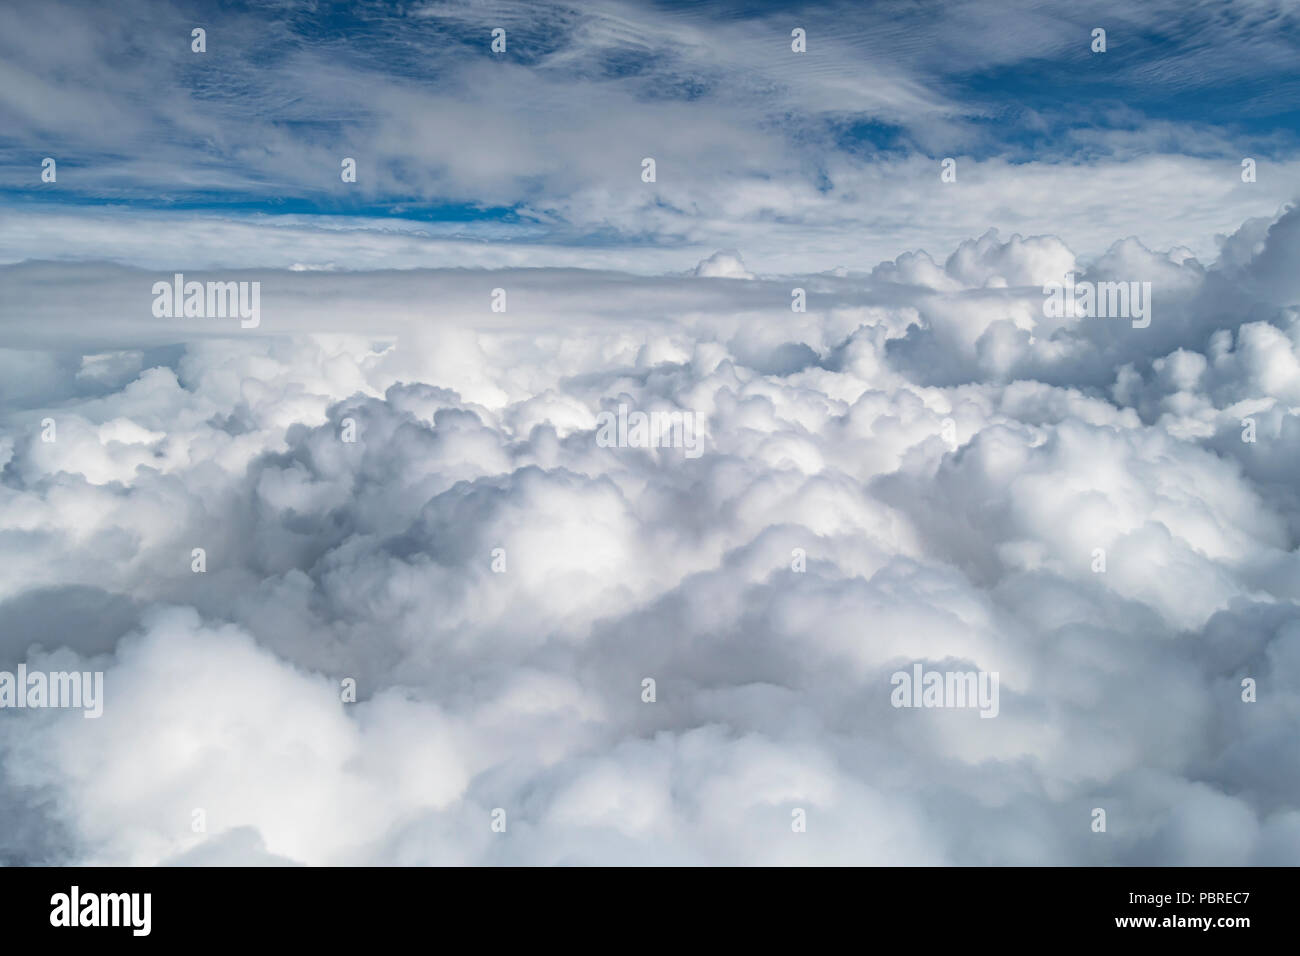 Cumulonimbus clouds, 30-40 thousand feet, Midwest USA, by Dominique Braud/Dembinsky Photo Assoc - Stock Image